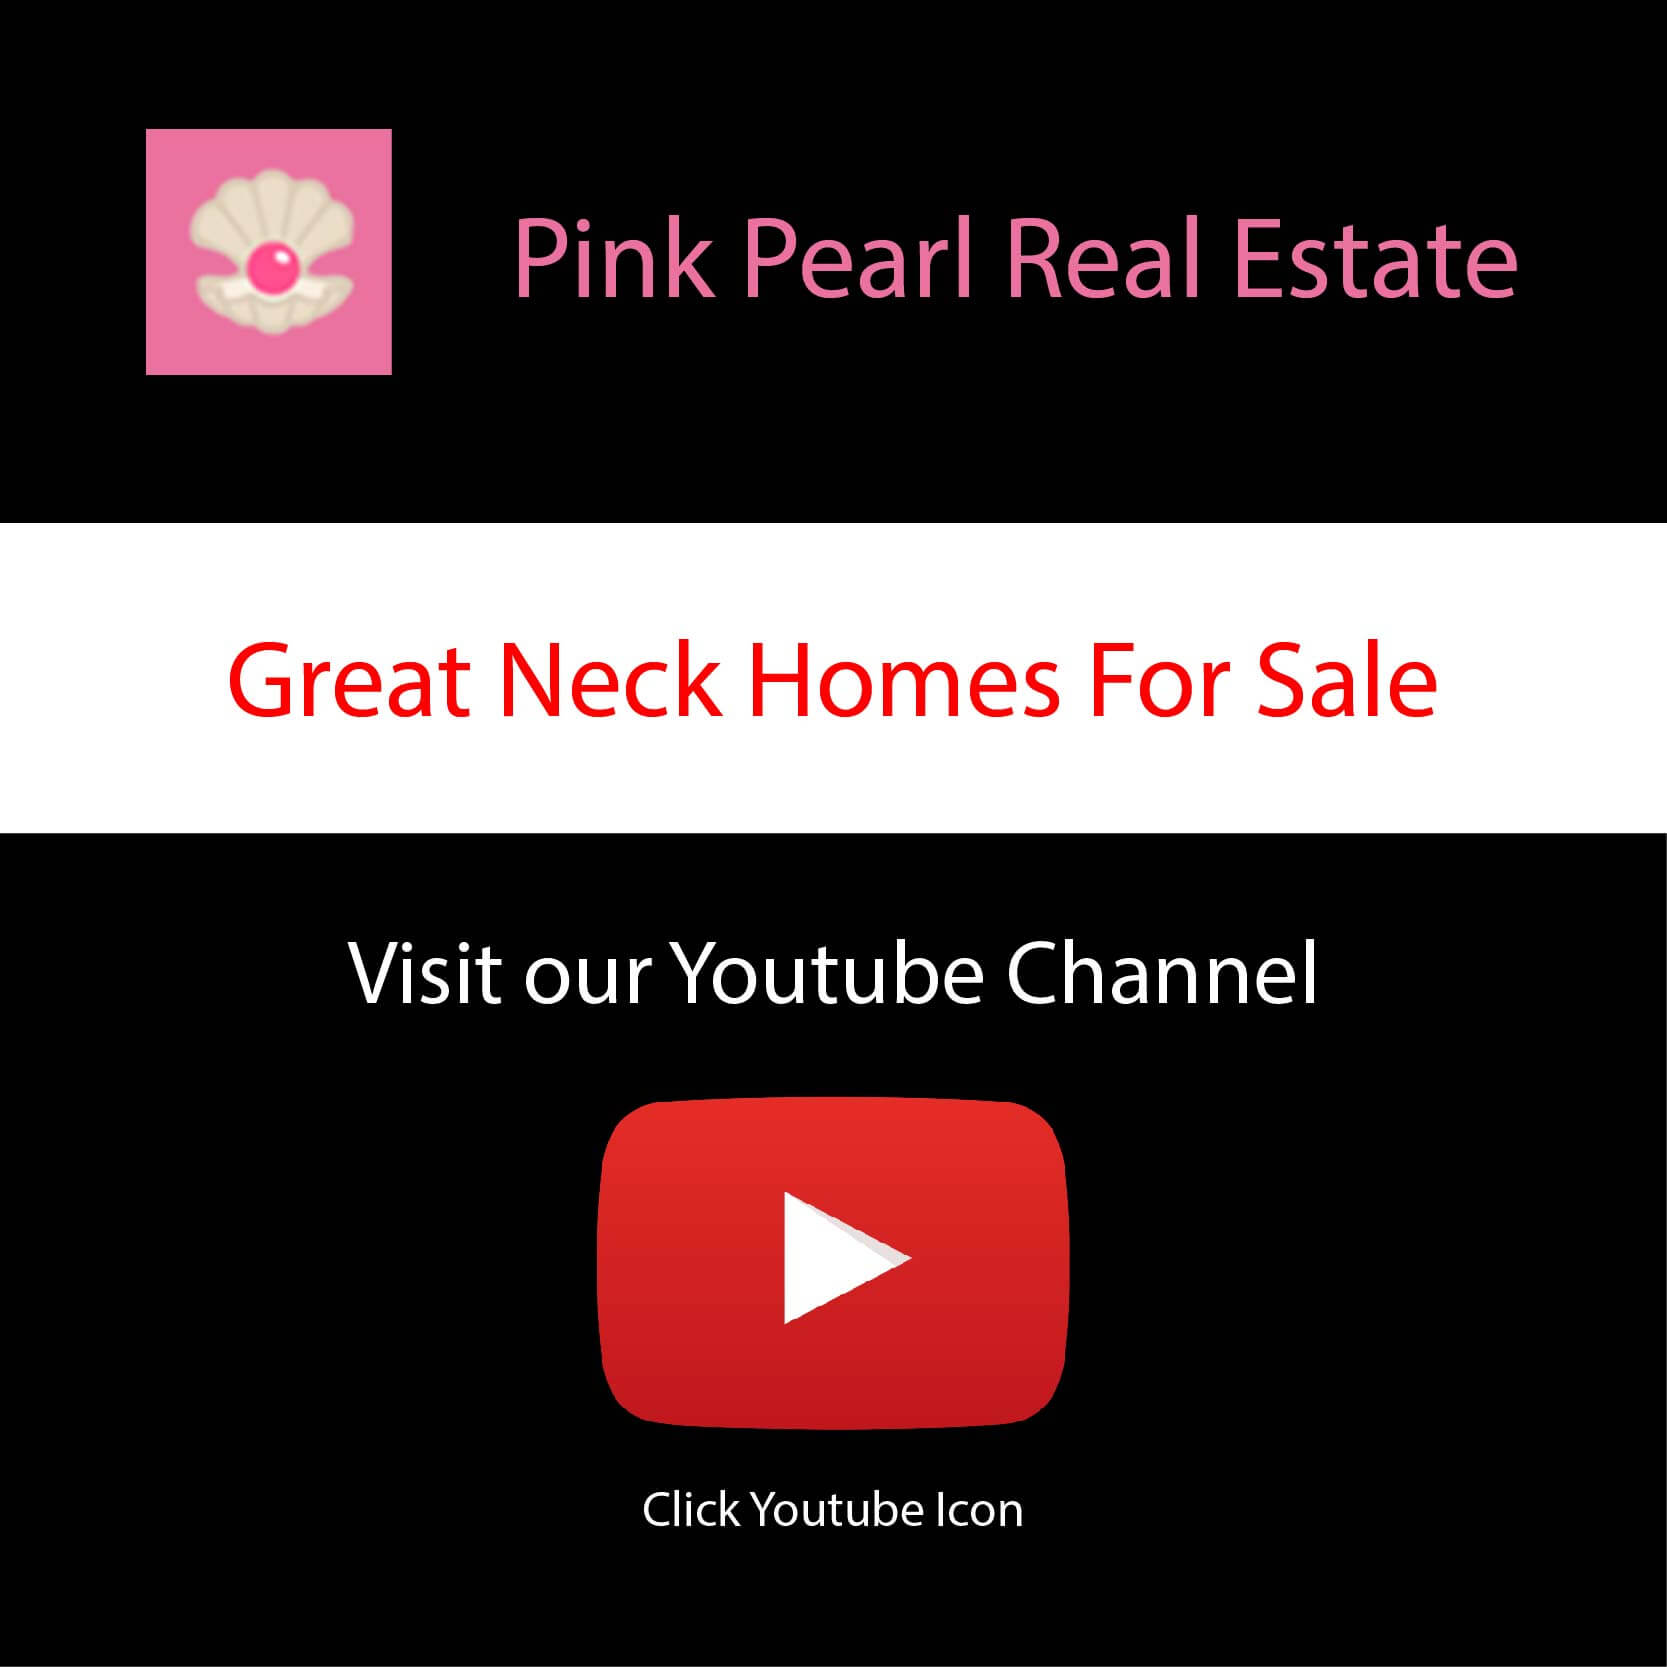 Visit Great Neck Homes For Sale on Youtube